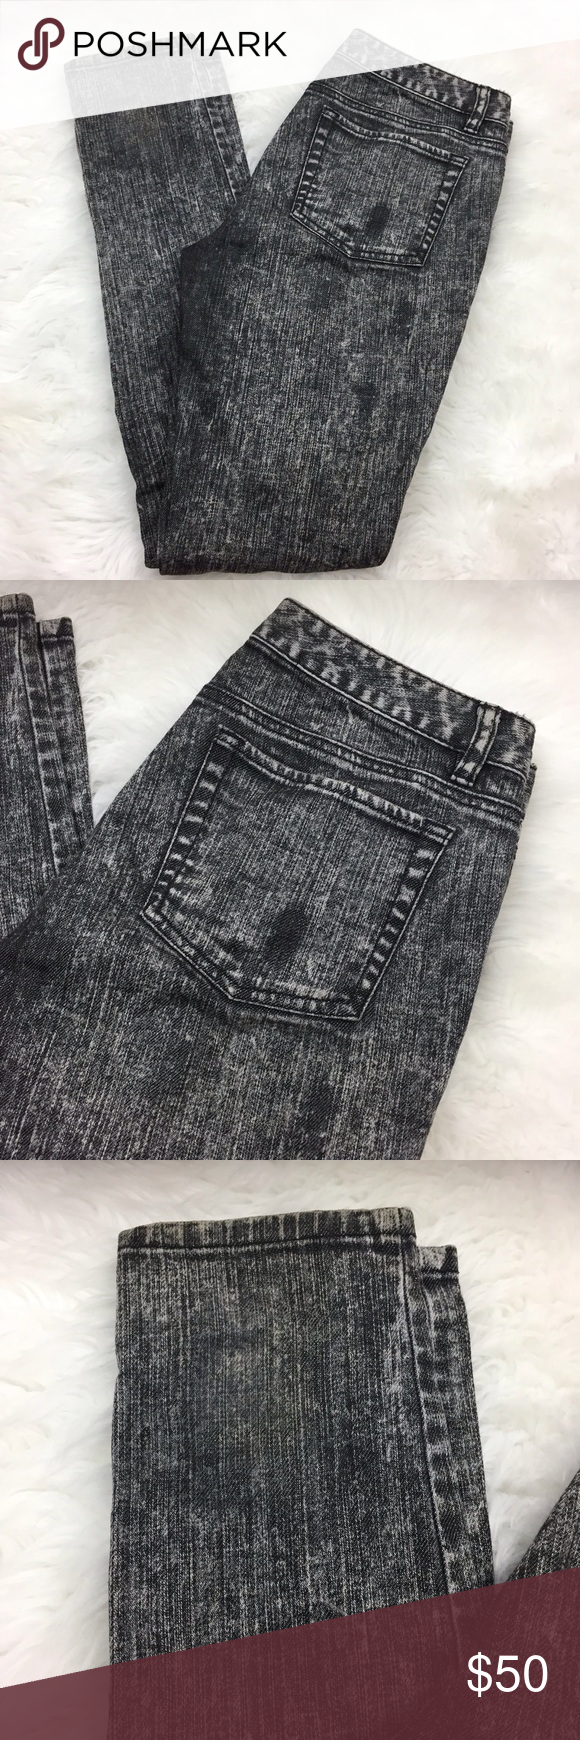 🍎Michael Kors Black Gray Acid Wash Skinny Jeans Michael Kors Womens Size 2 Black Gray Acid Wash Skinny Denim Jeans  Waist measurement across: 15.5 inches  Length: 39 inches  Inseam: 30.5 inches  This has been gently worn with no major flaws.  Please refer to photos for more details. Michael Kors Jeans Skinny